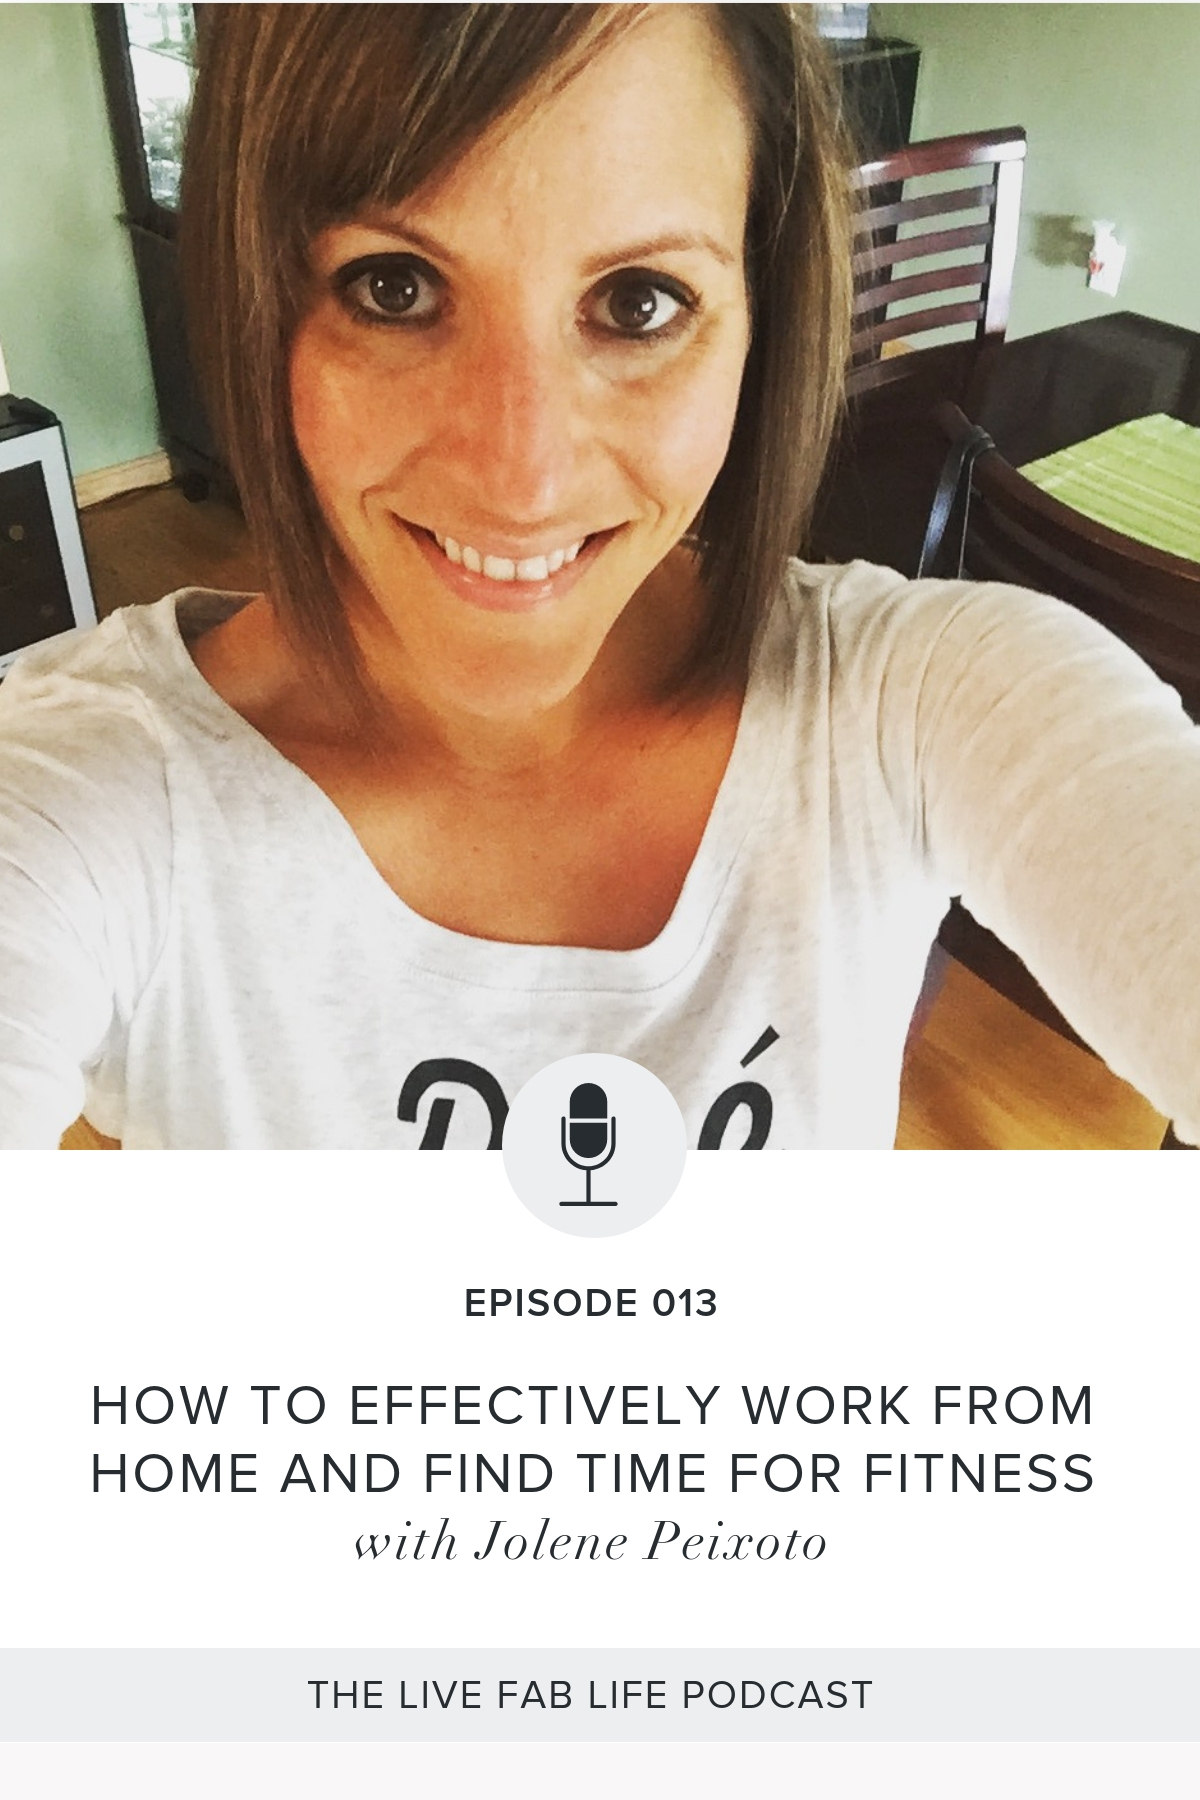 Episode 013: How to Effectively Work From Home and Find Time for Fitness with Jolene Peixoto